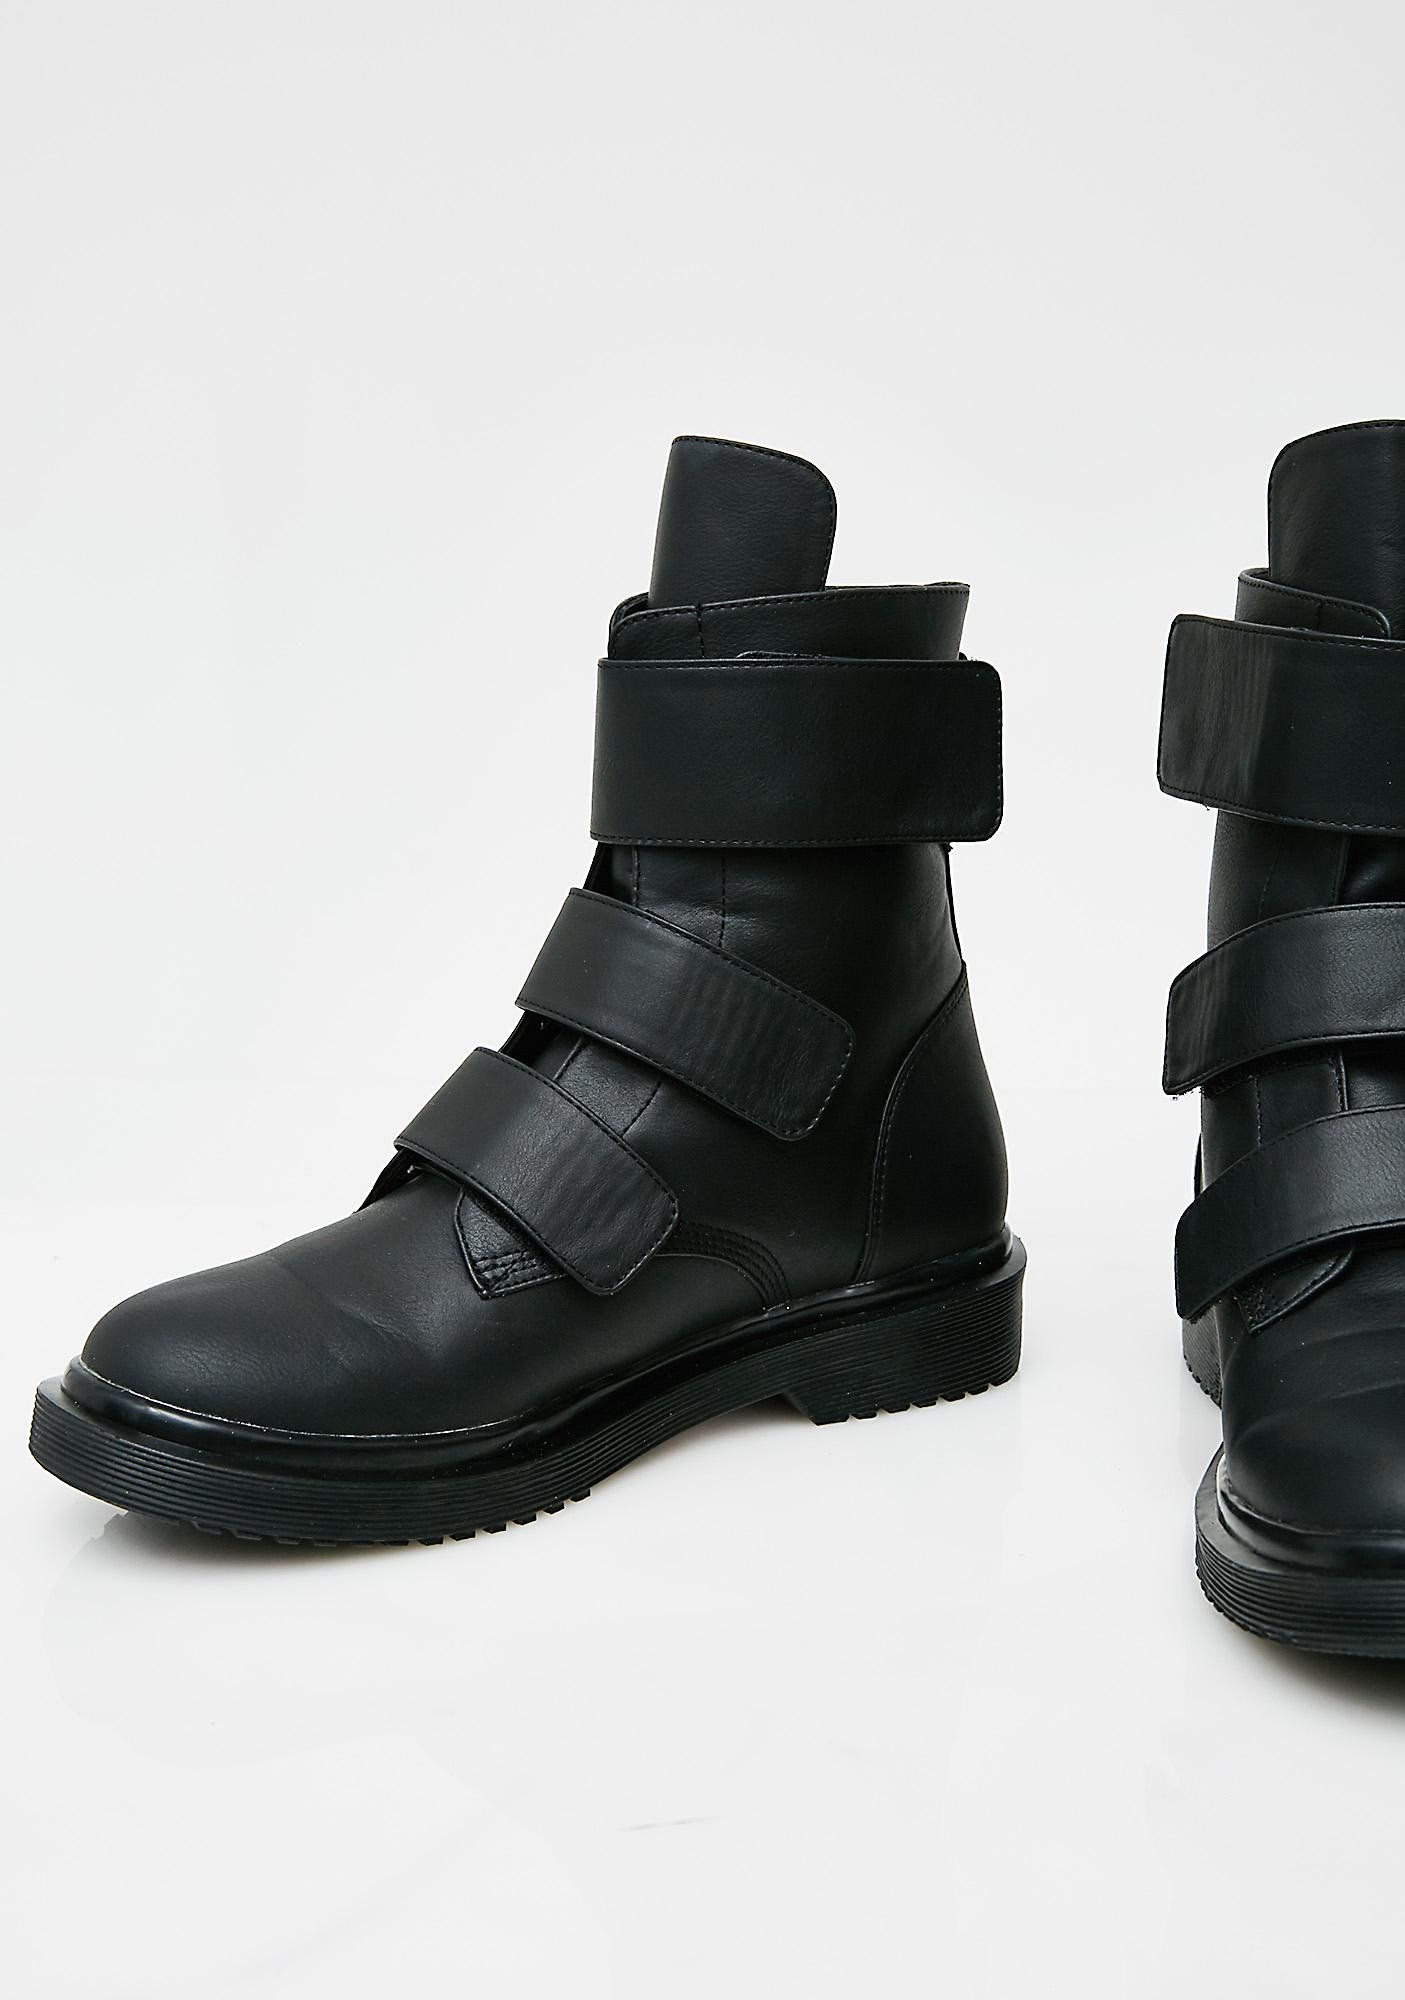 a3b2dcea81 Current Mood Strap It Down Boots cuz you re takin   em for a ride. These  black boots have three velcro straps across the top and rounded toes.